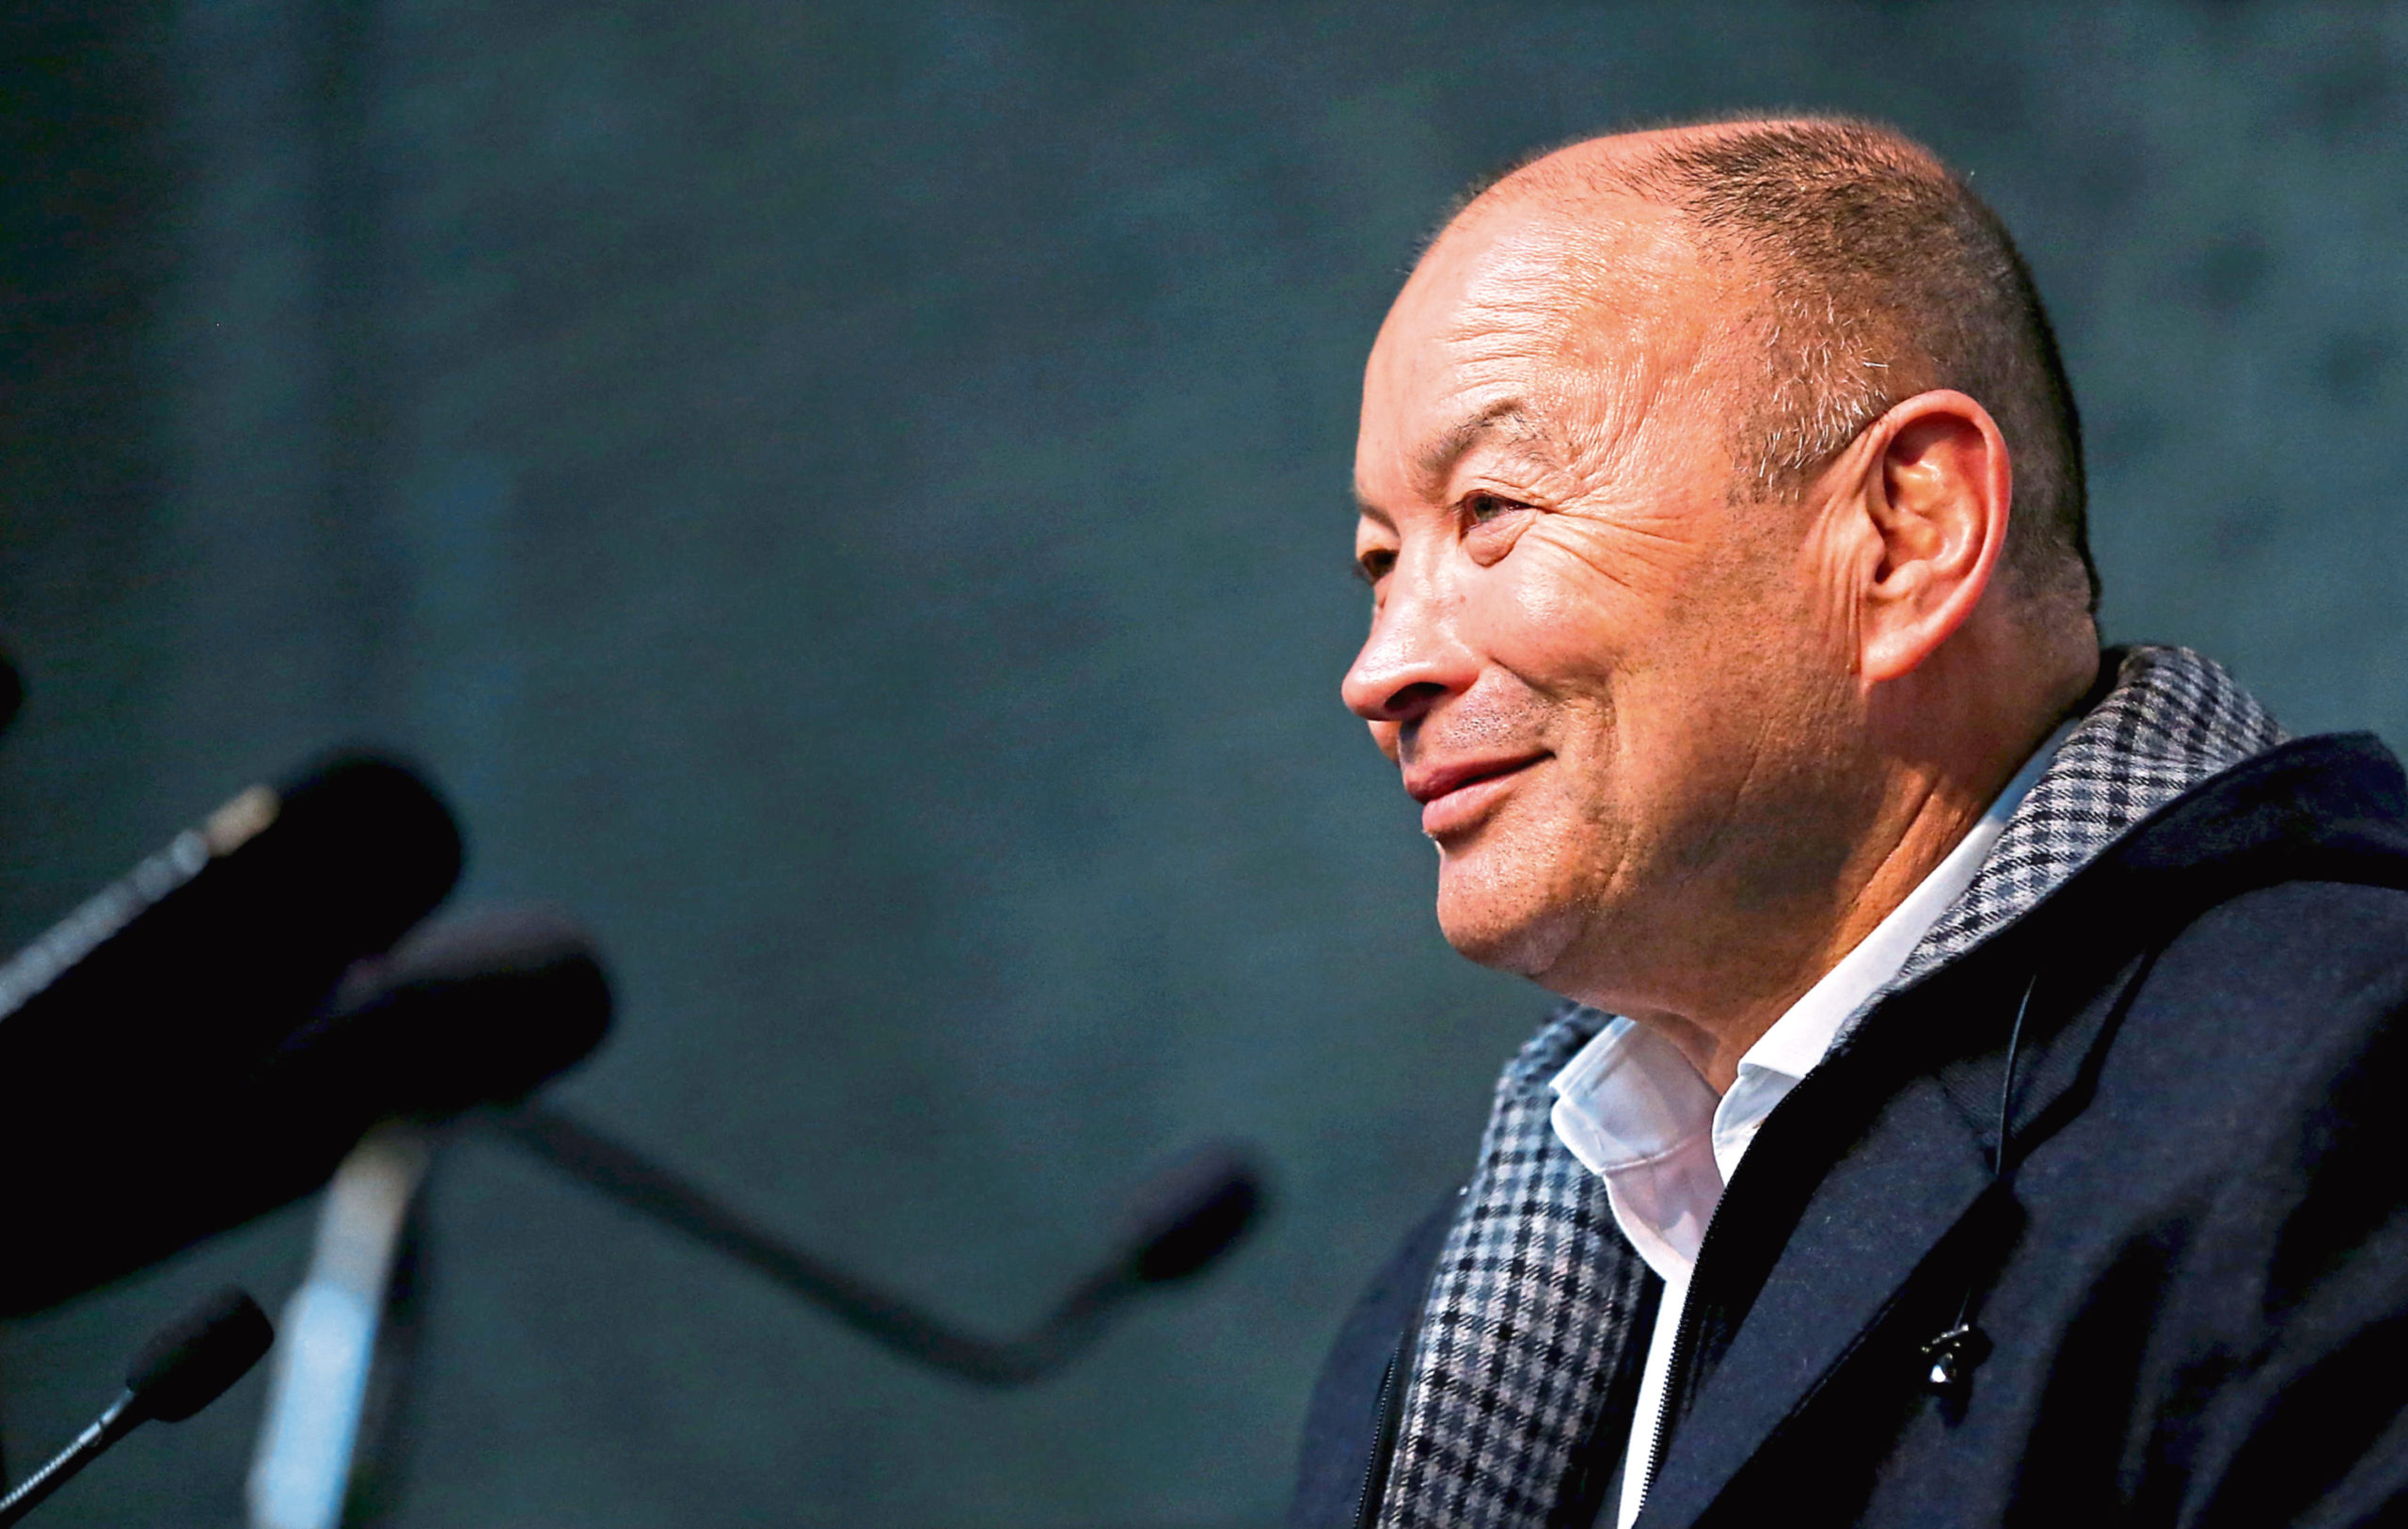 England Head Coach Eddie Jones enjoys his sparring with the media, and the feeling's mostly mutual.